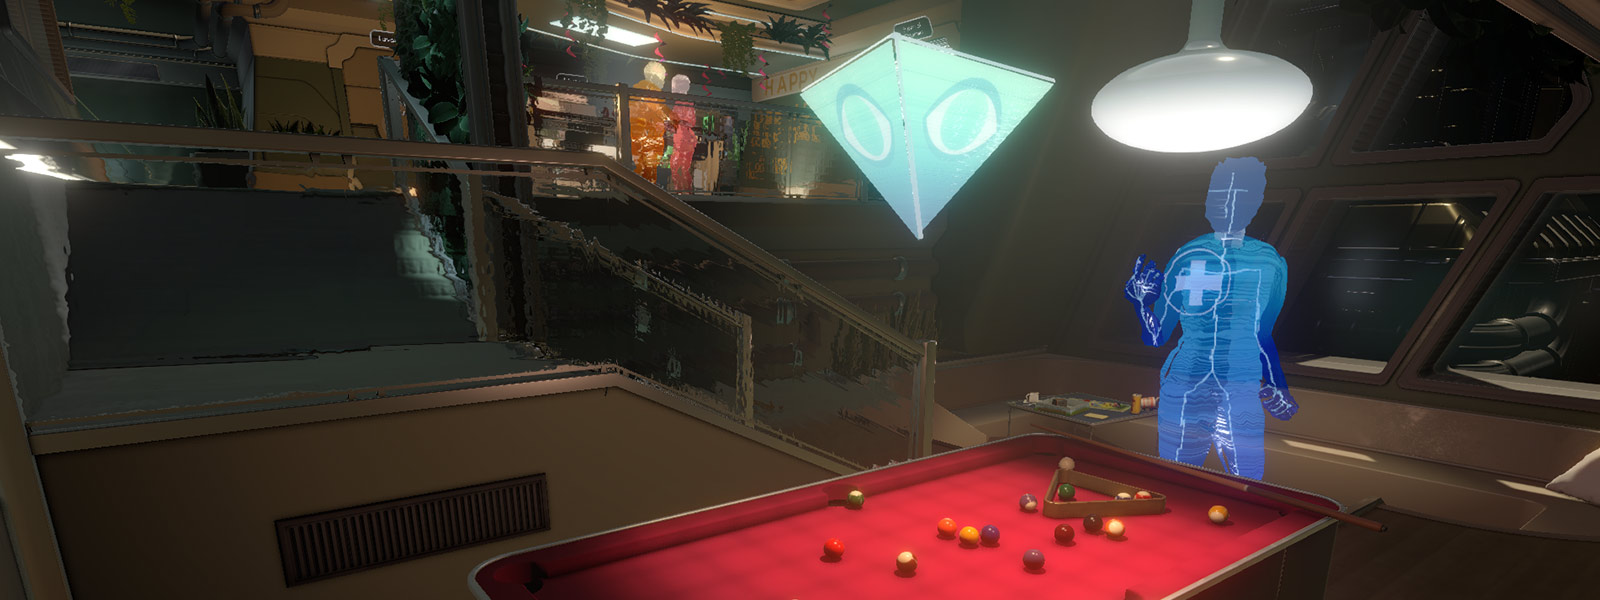 AI view of character next to pool table